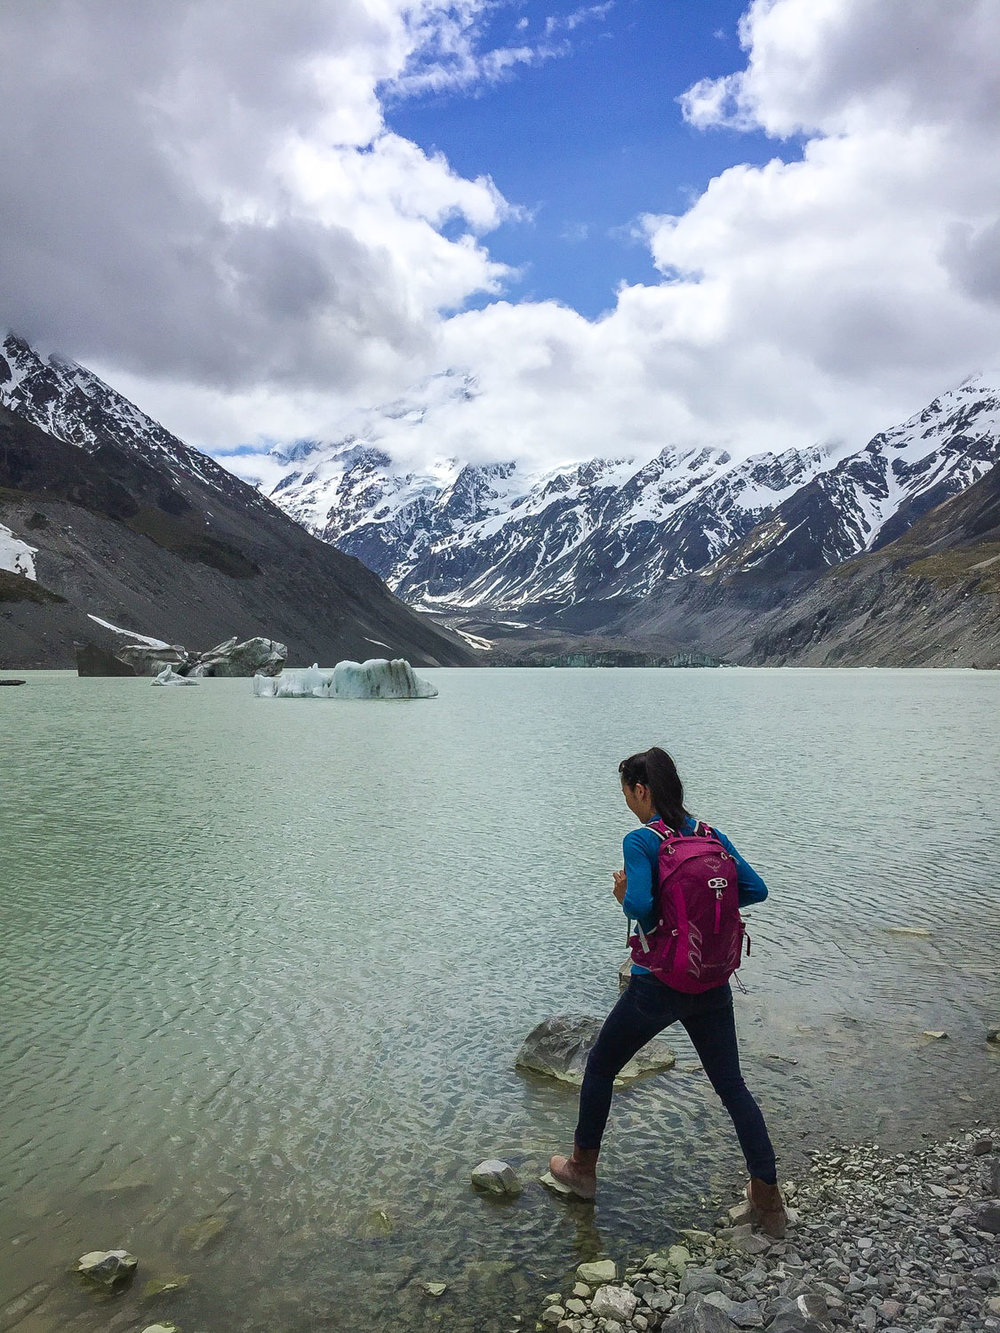 Hanging out at hooker lake and hooker glacier